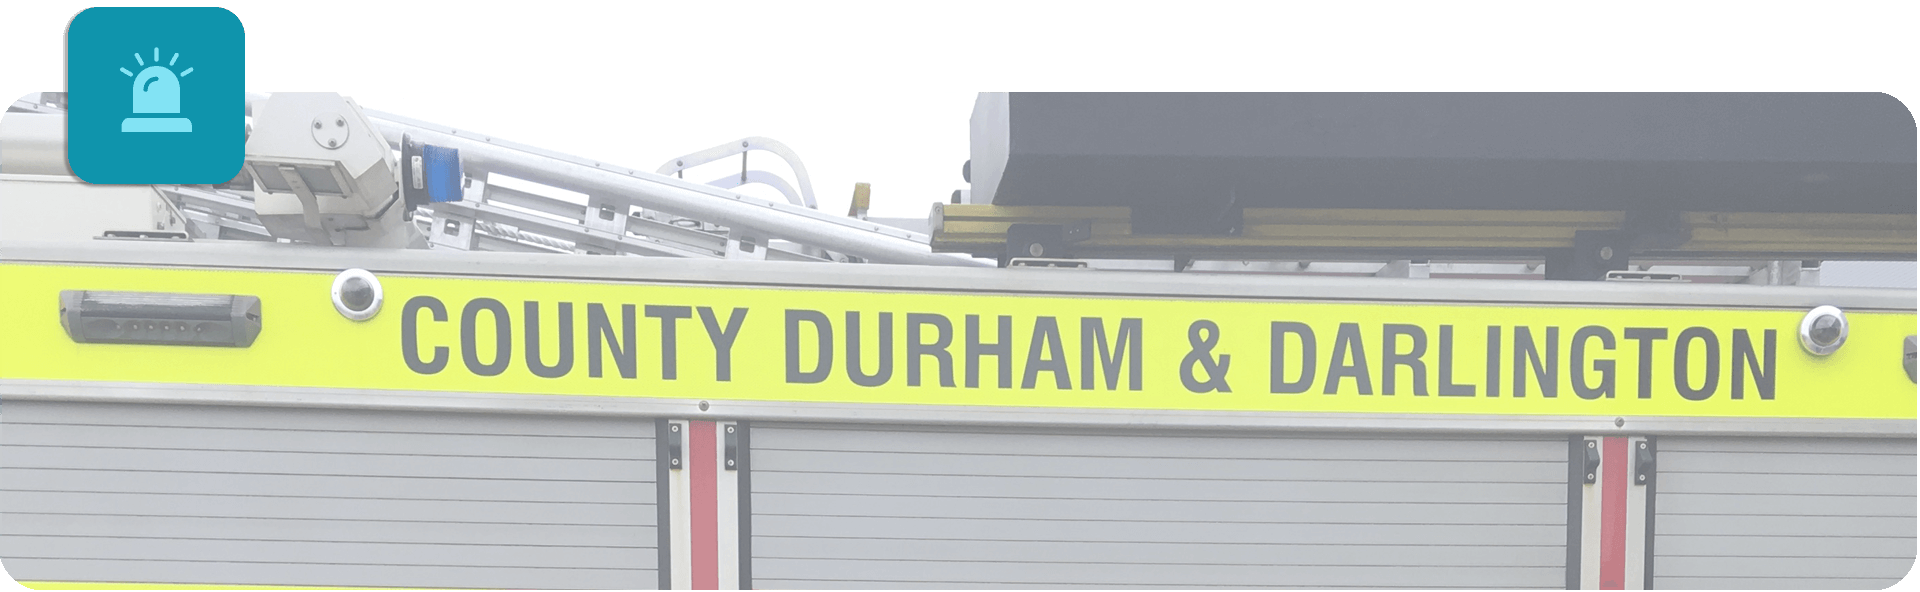 county durham and darlington fire engine close up banner